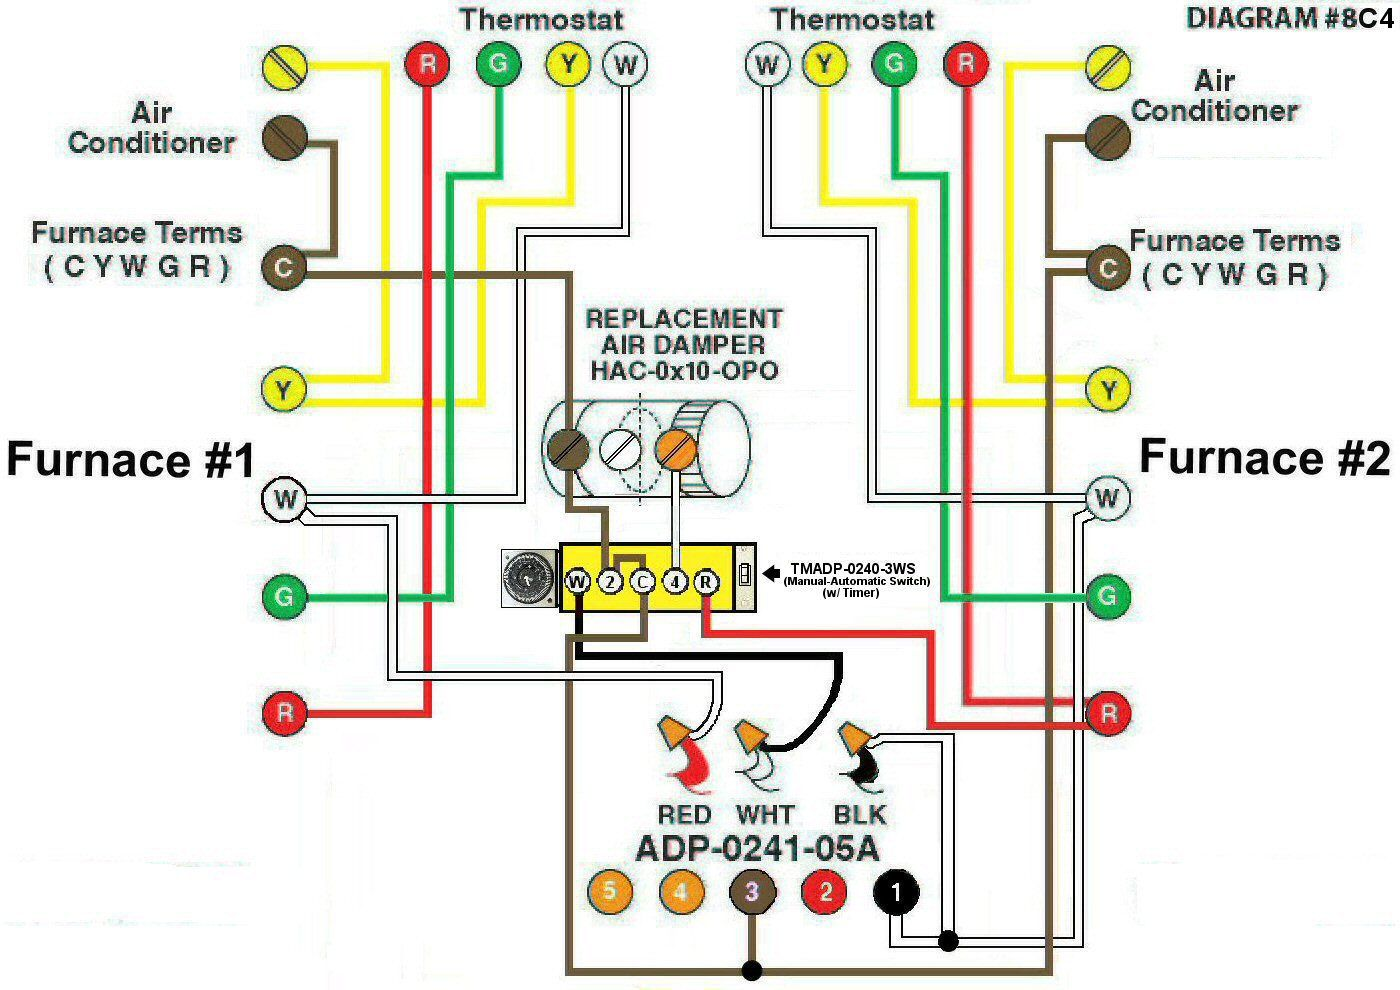 Furnace Blower Wiring Diagram Me New